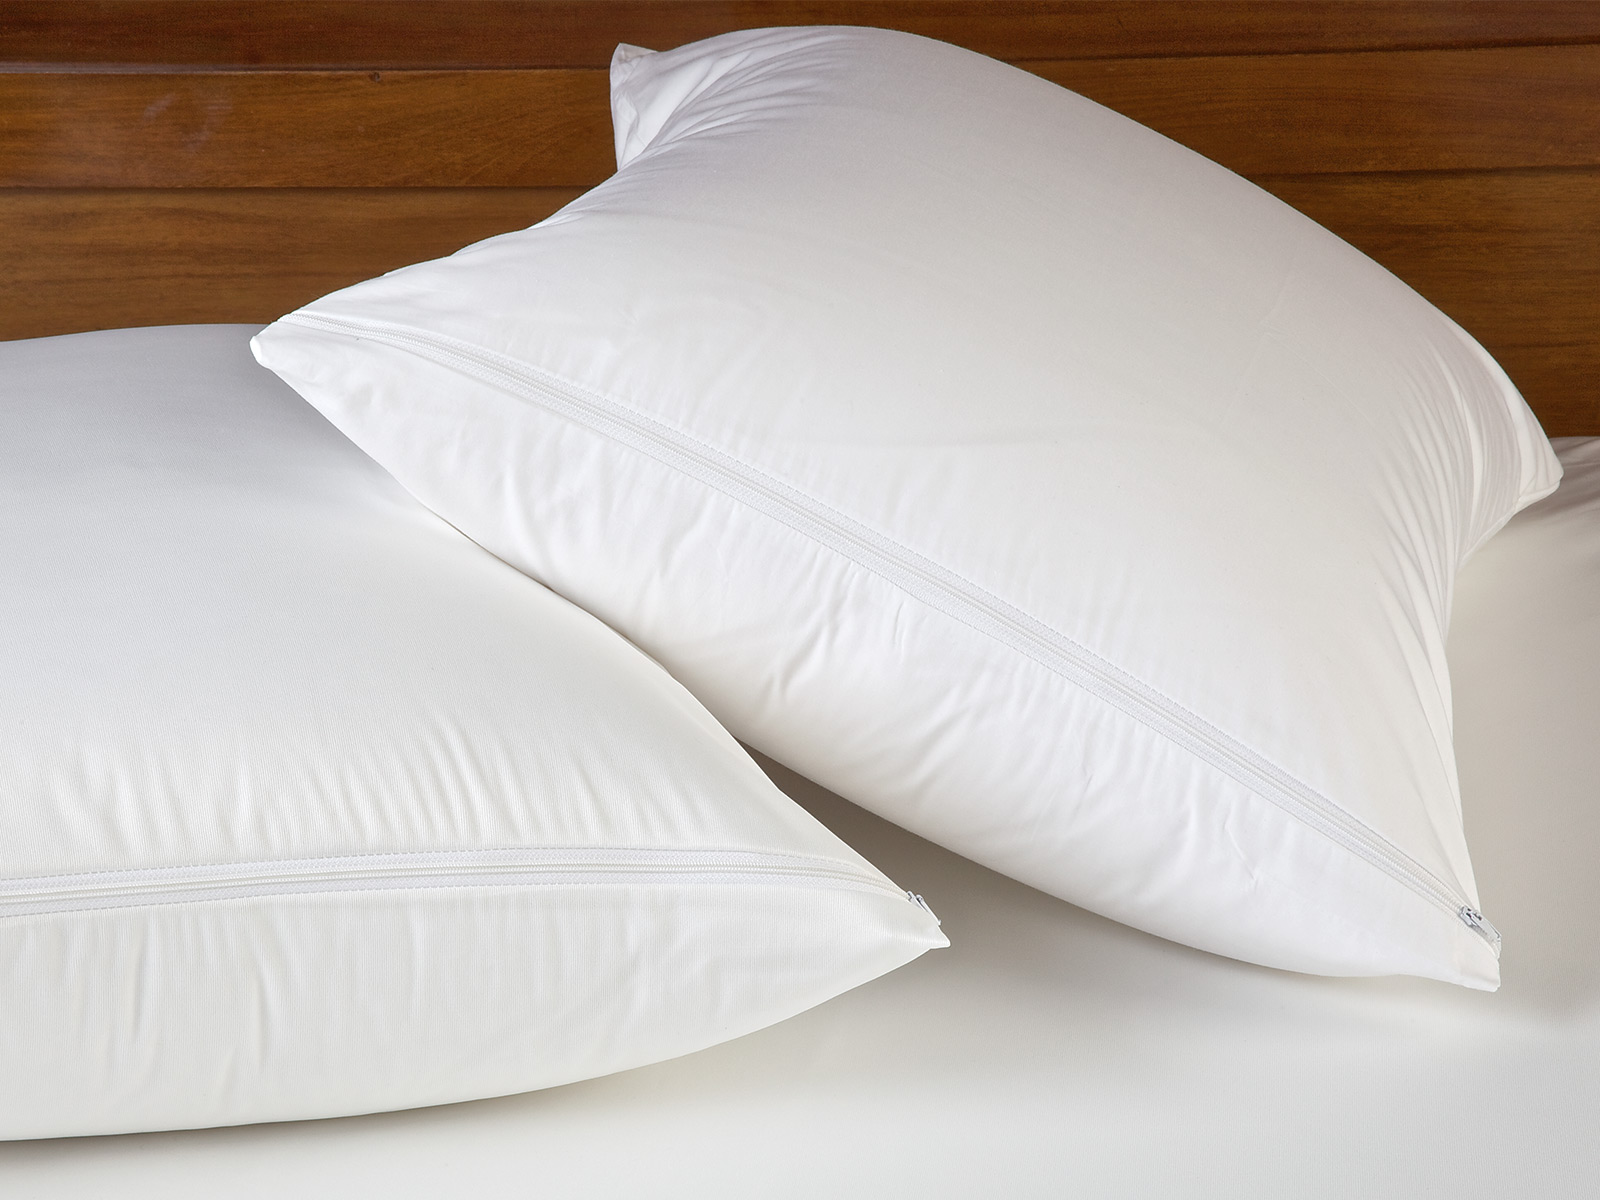 Bed Bugs In Feather Pillows